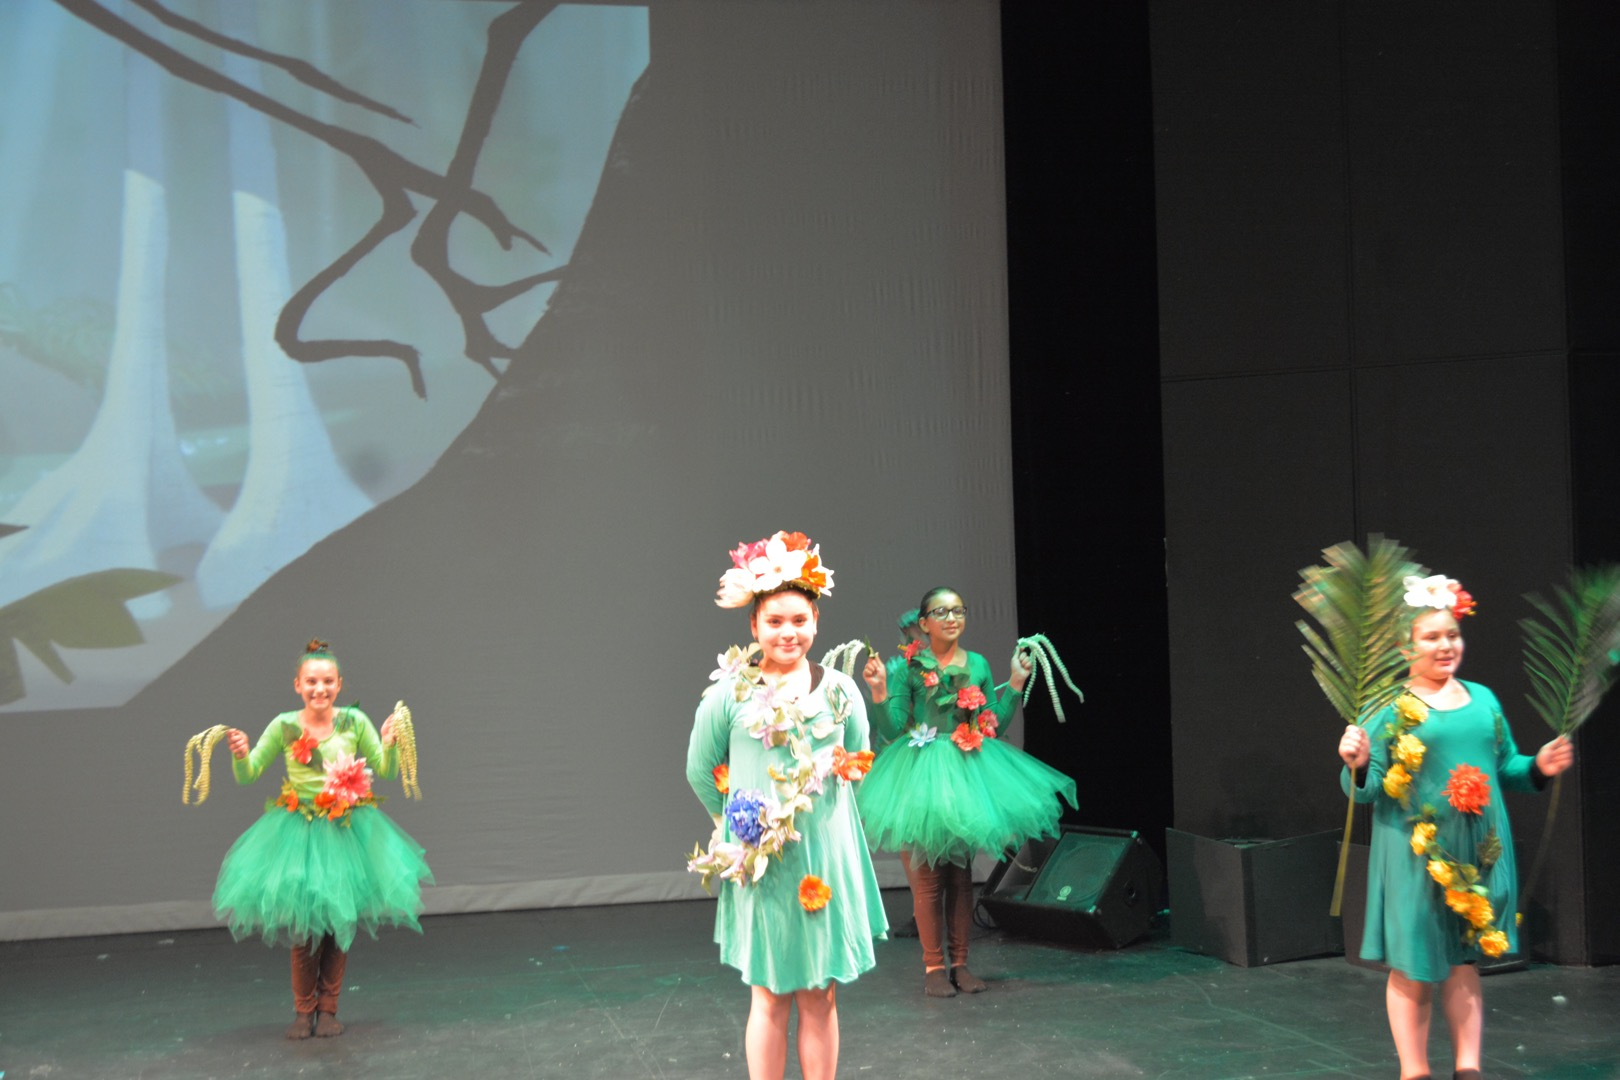 4 dancing girls dress in green costumes with flowers